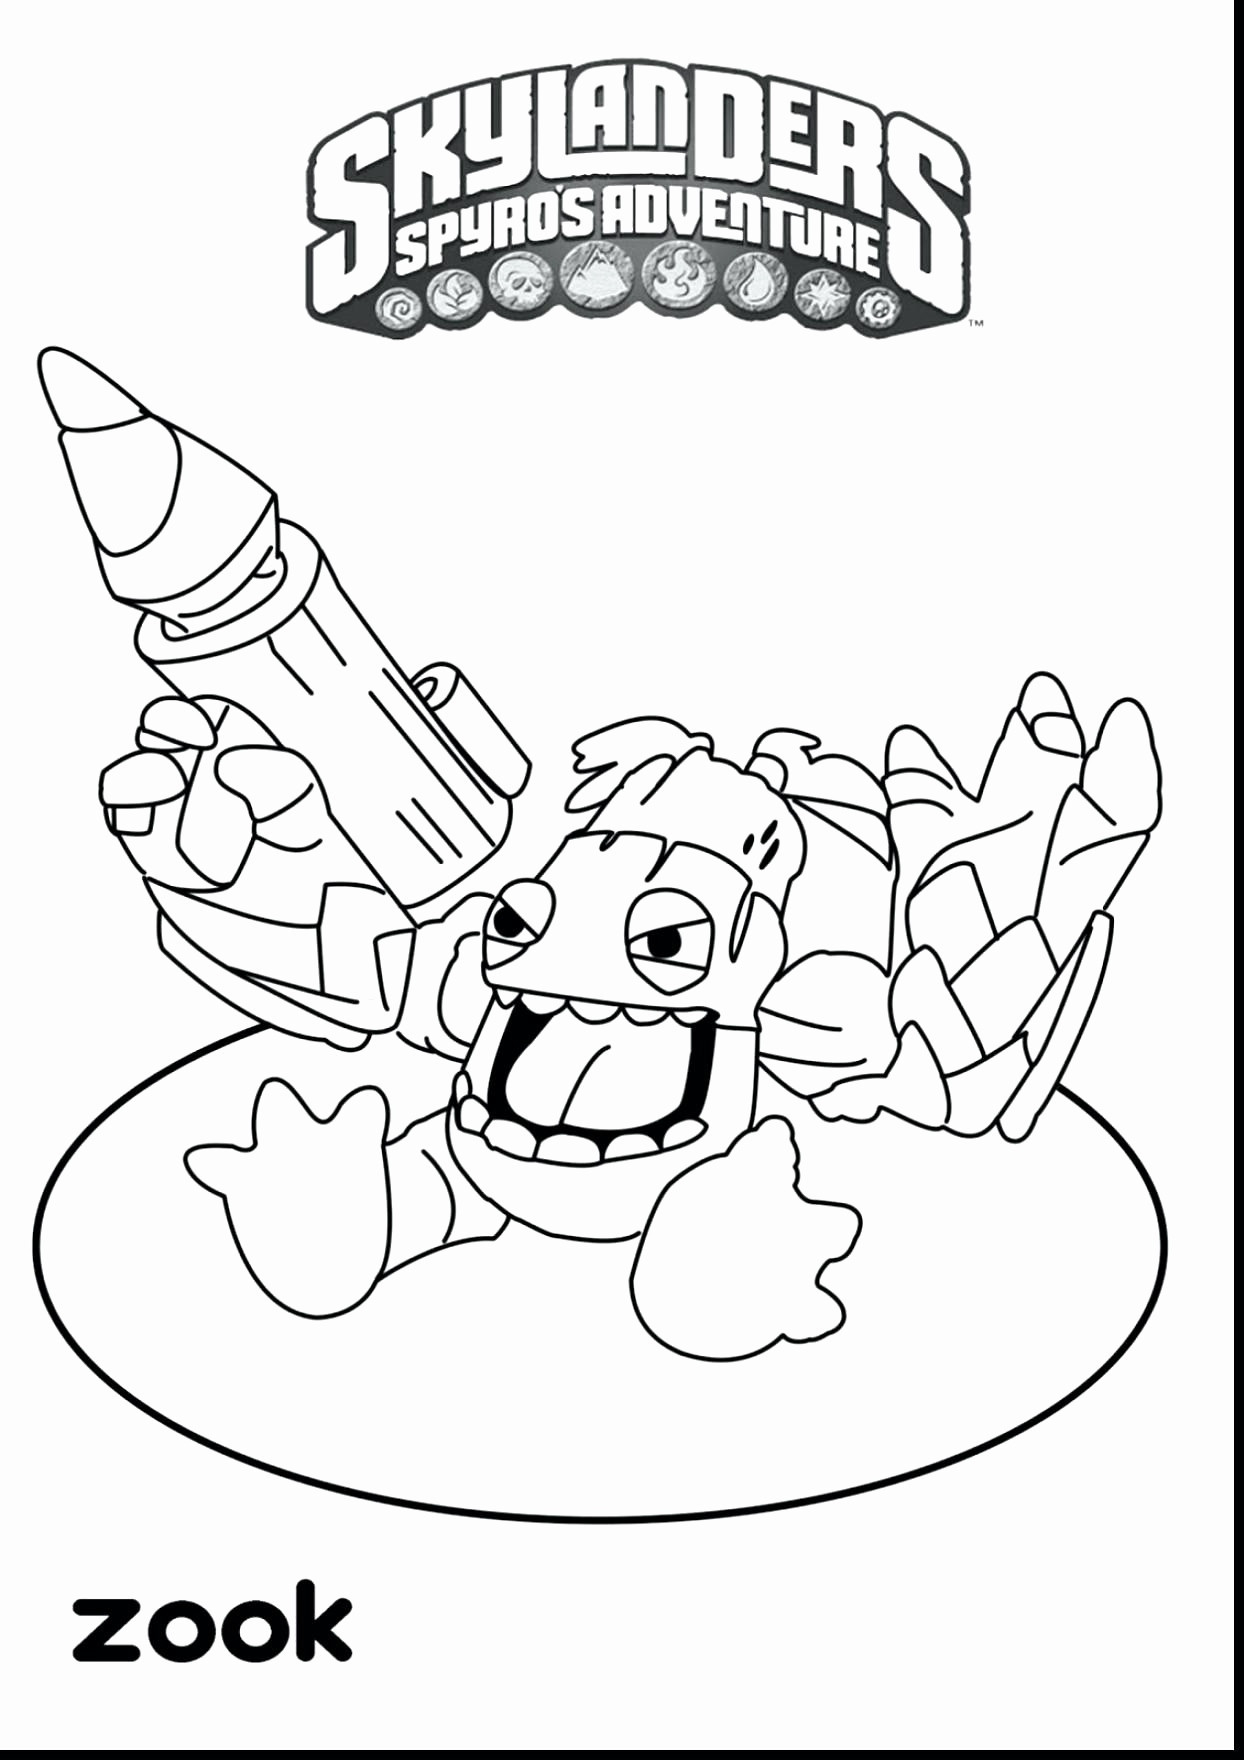 Unhealthy Food Coloring Pages  Collection 10r - Free For Children